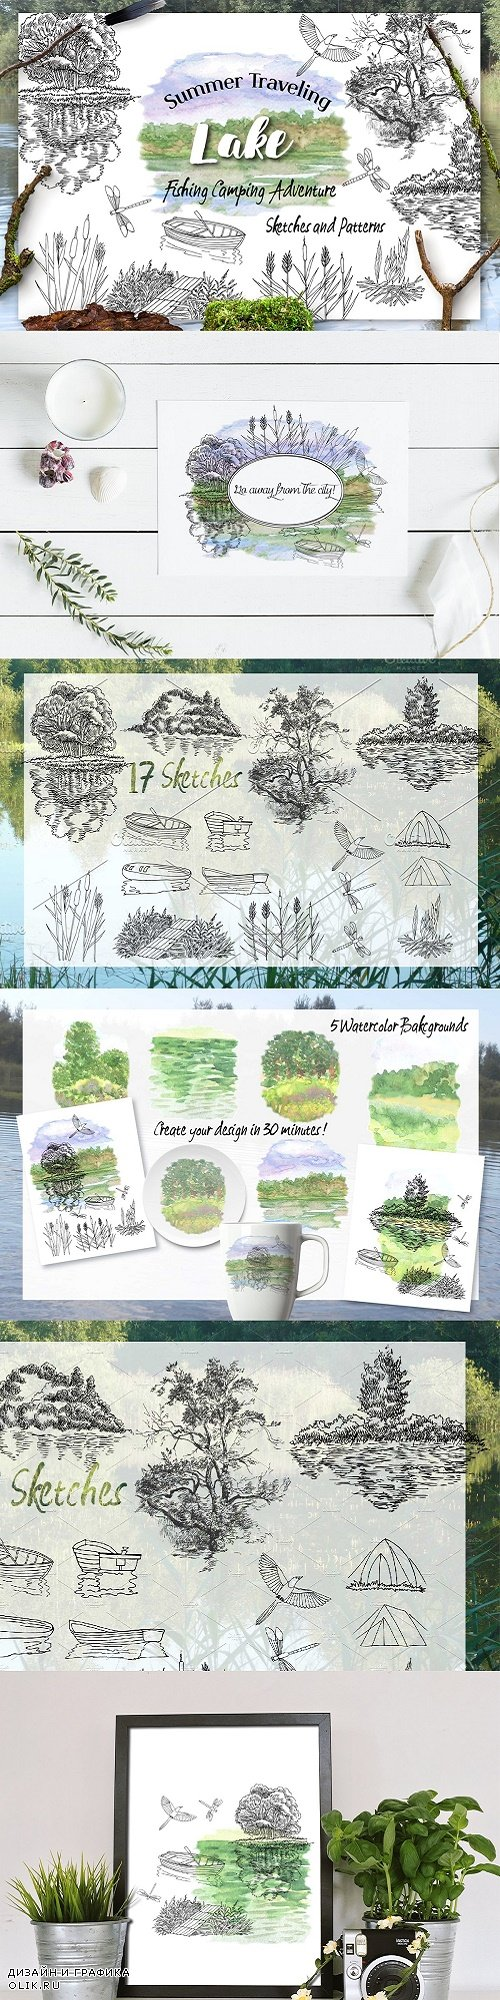 Summer on the Lake. Sketches - 2392137